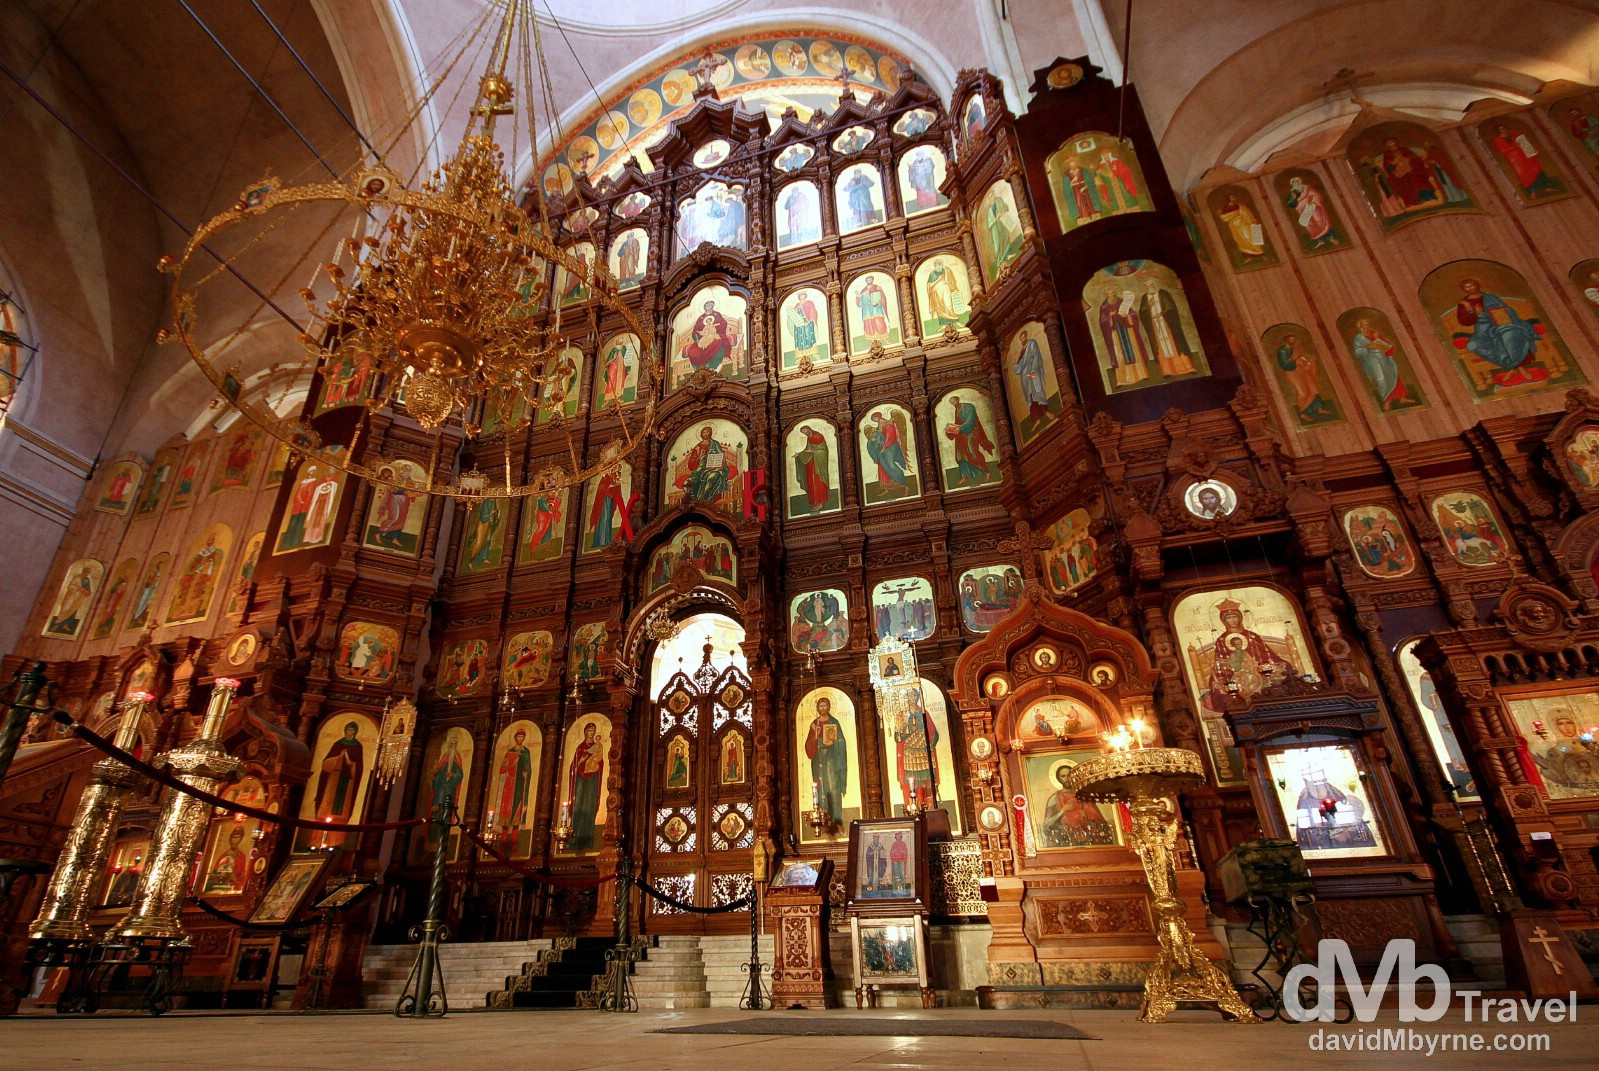 A section of the interior of the New Fair Cathedral (Alexander Nevsky Cathedral) Nizhny Novgorod, Russia. November 14th 2012.